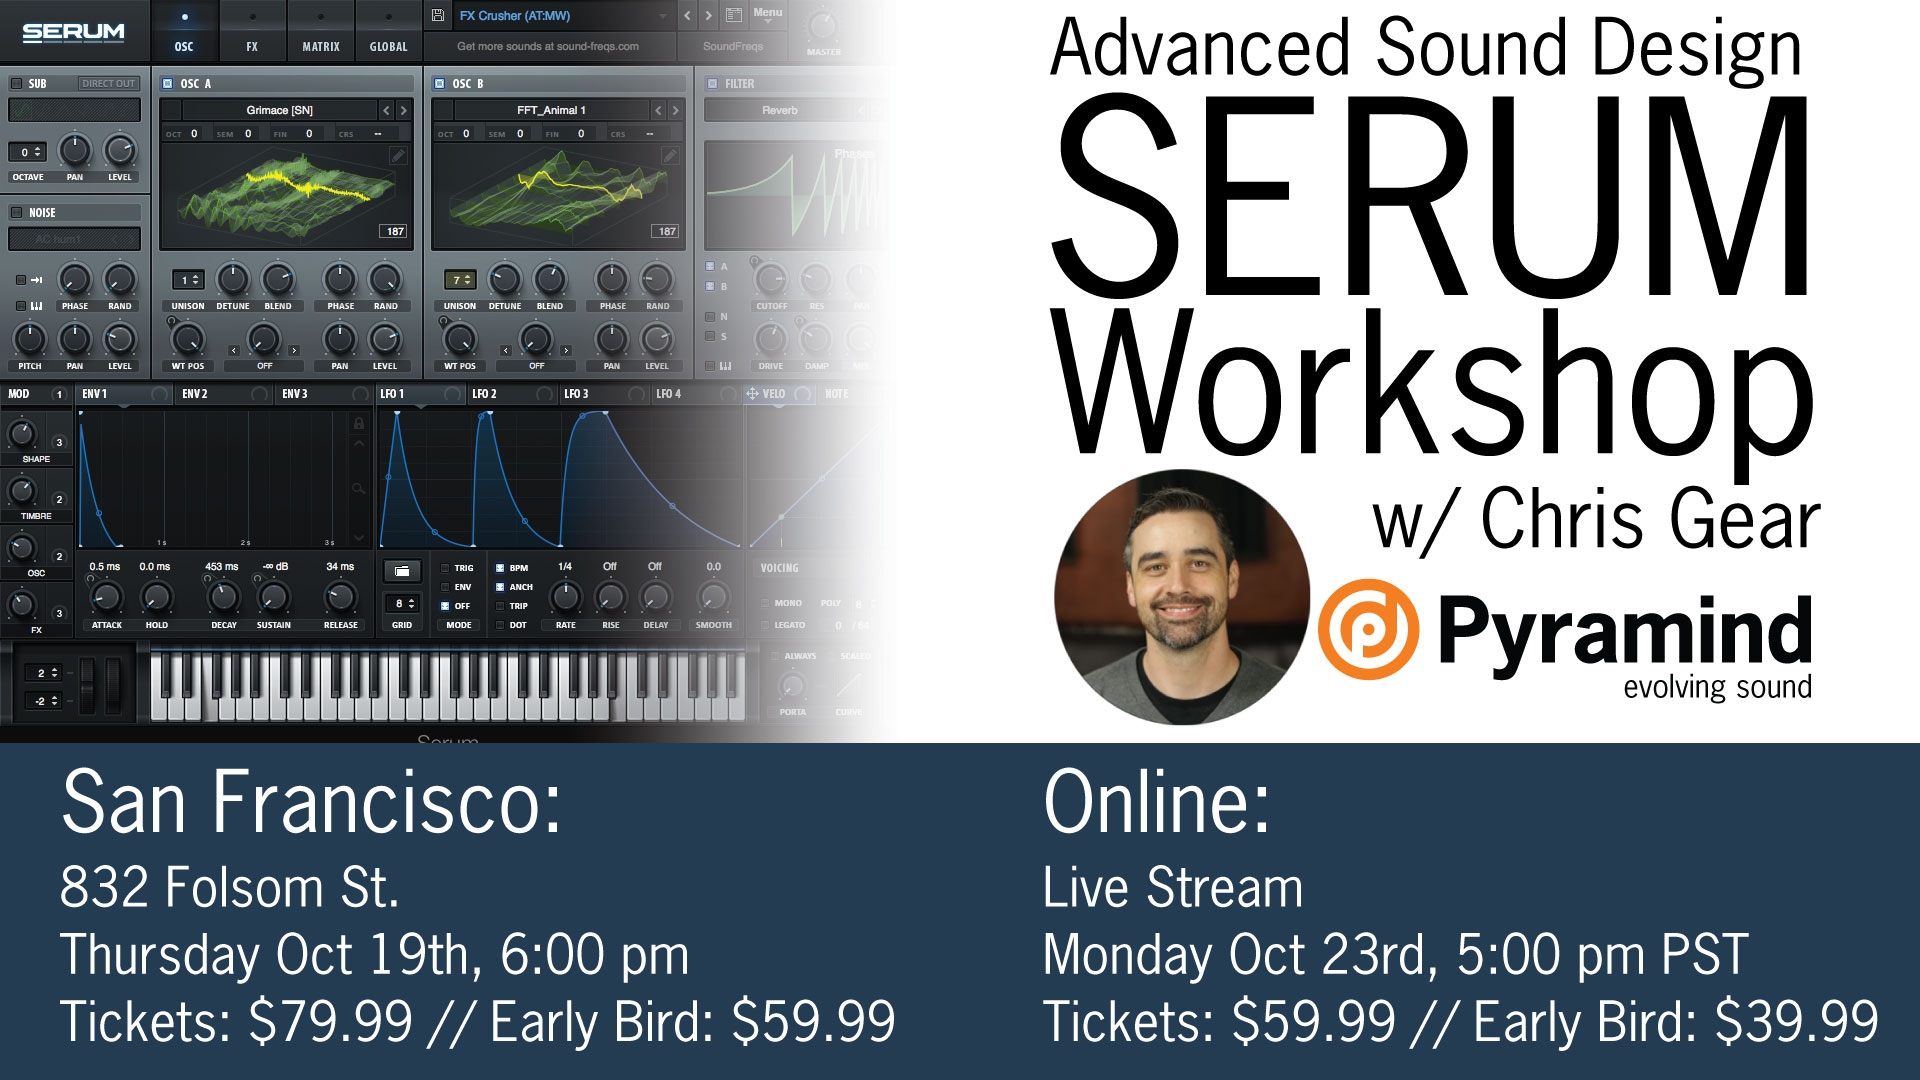 Online Workshops - Serum